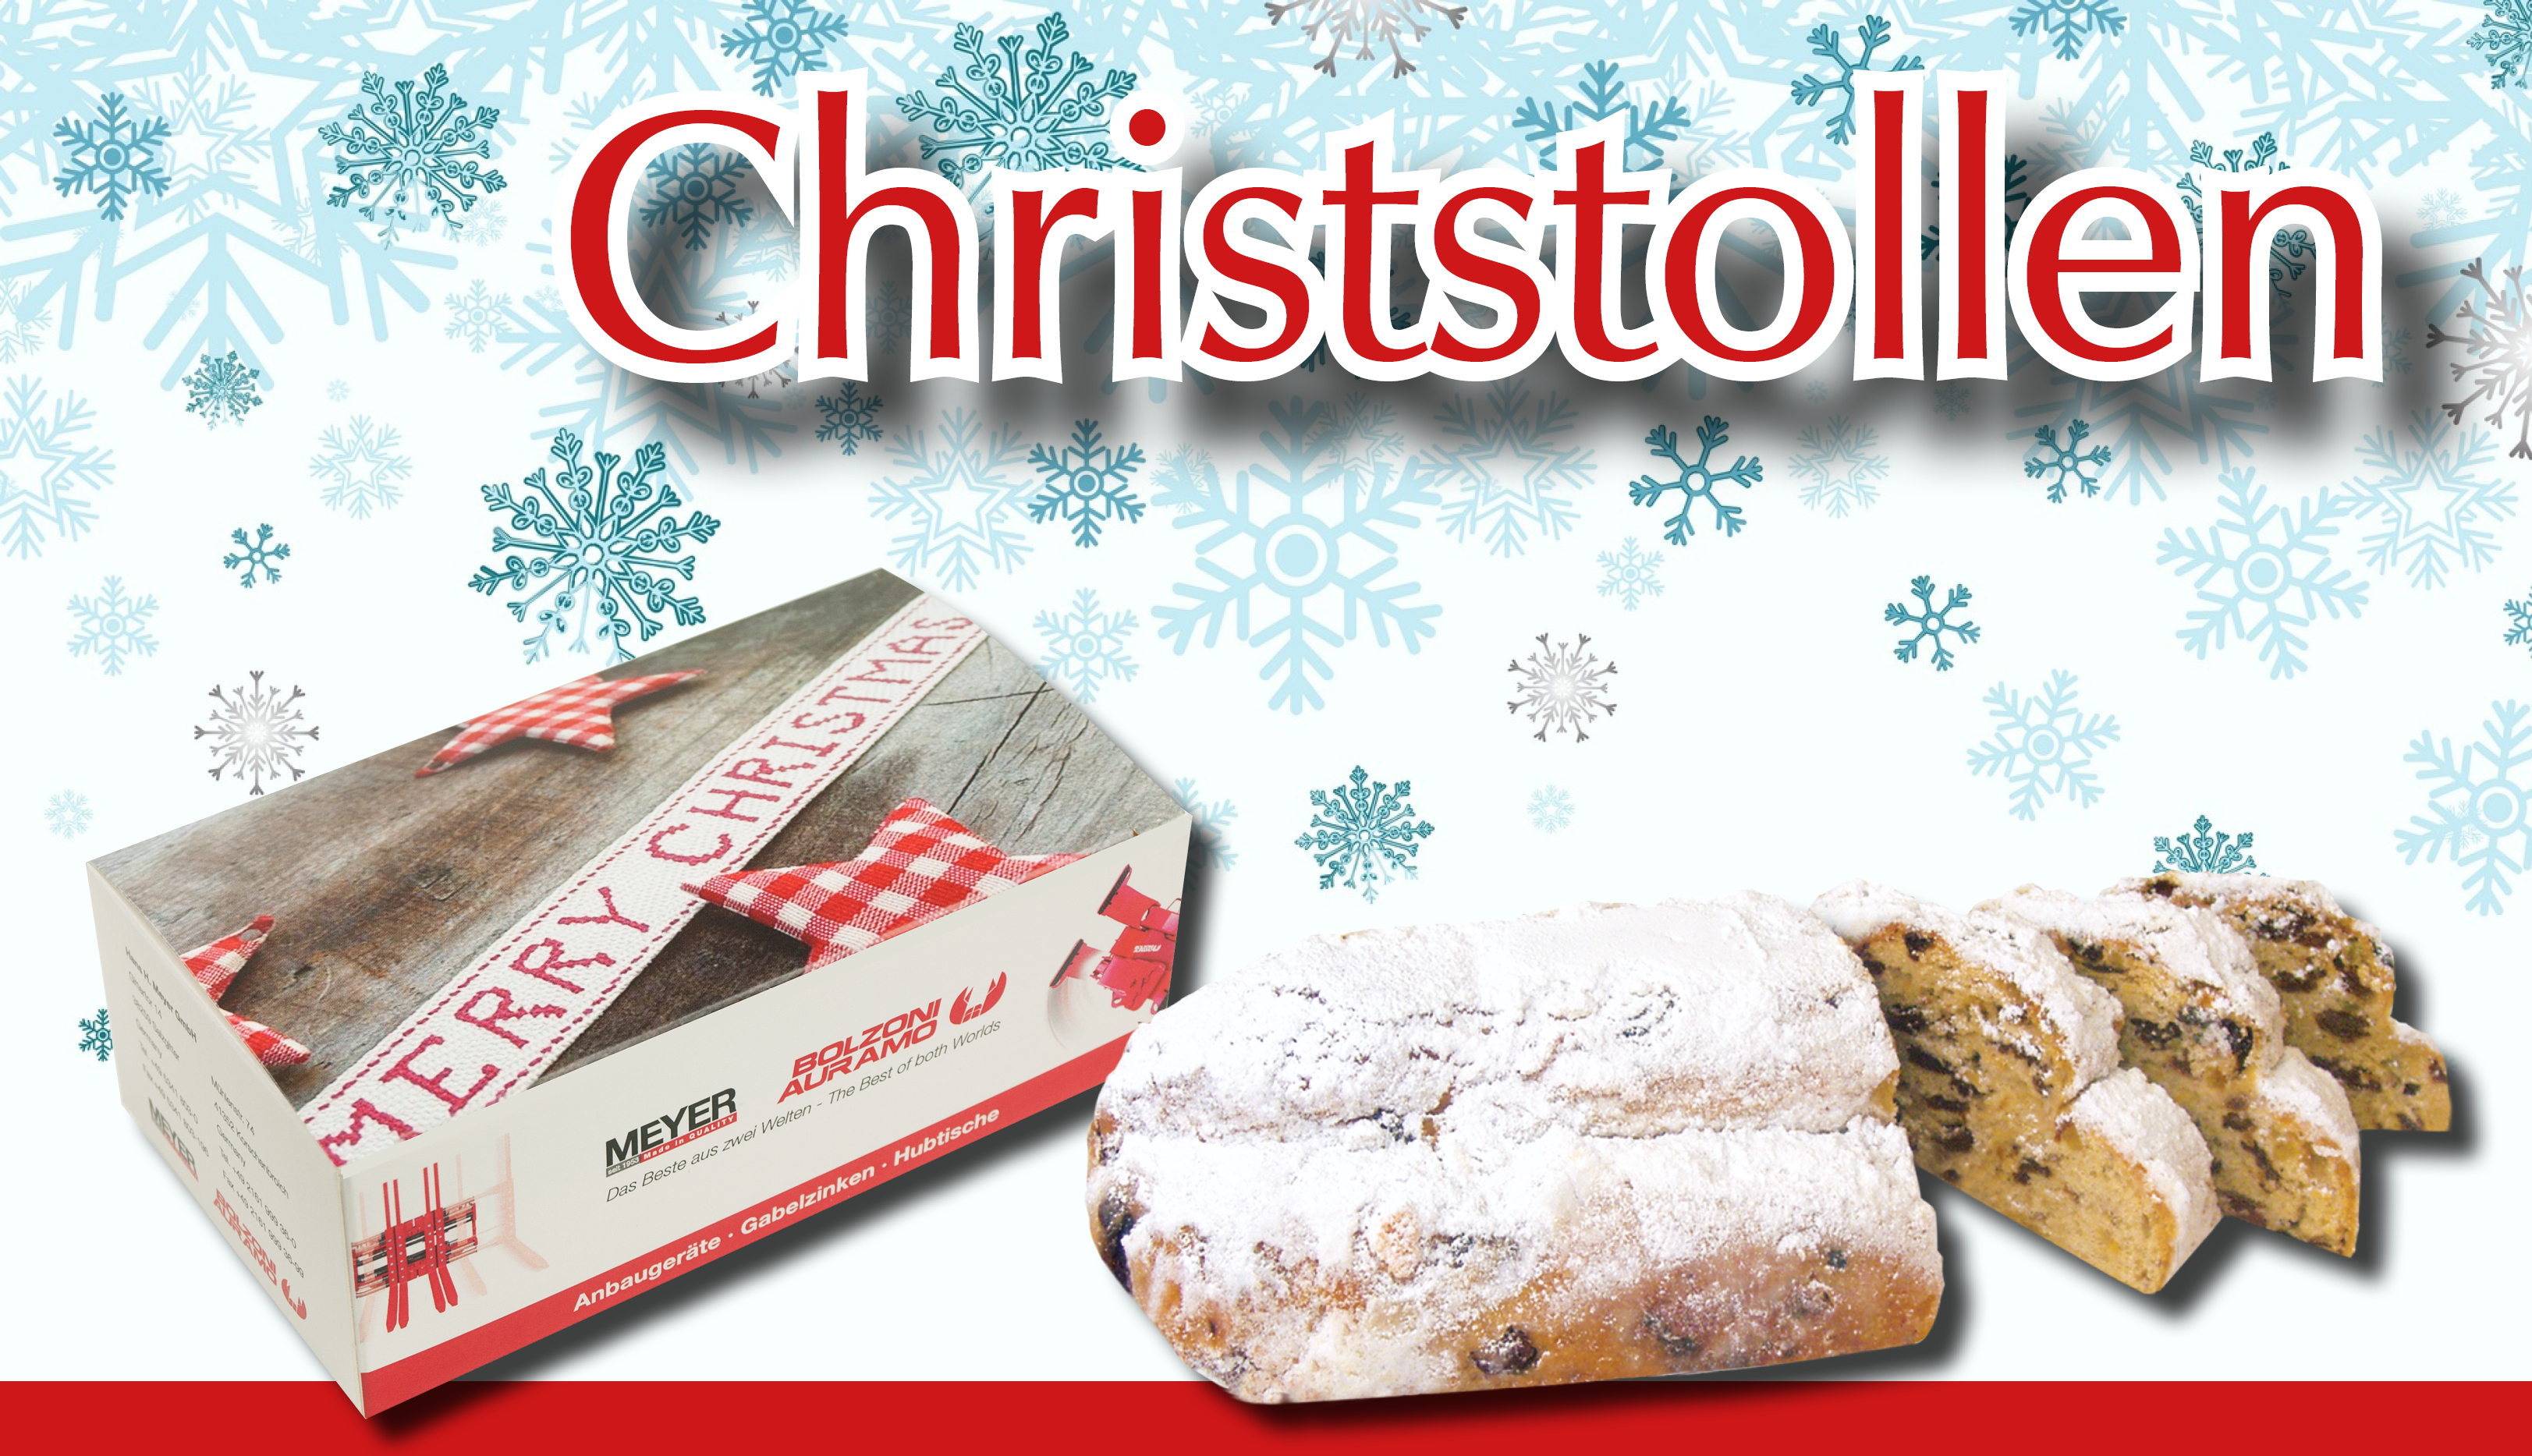 Christstollen in Displaybox